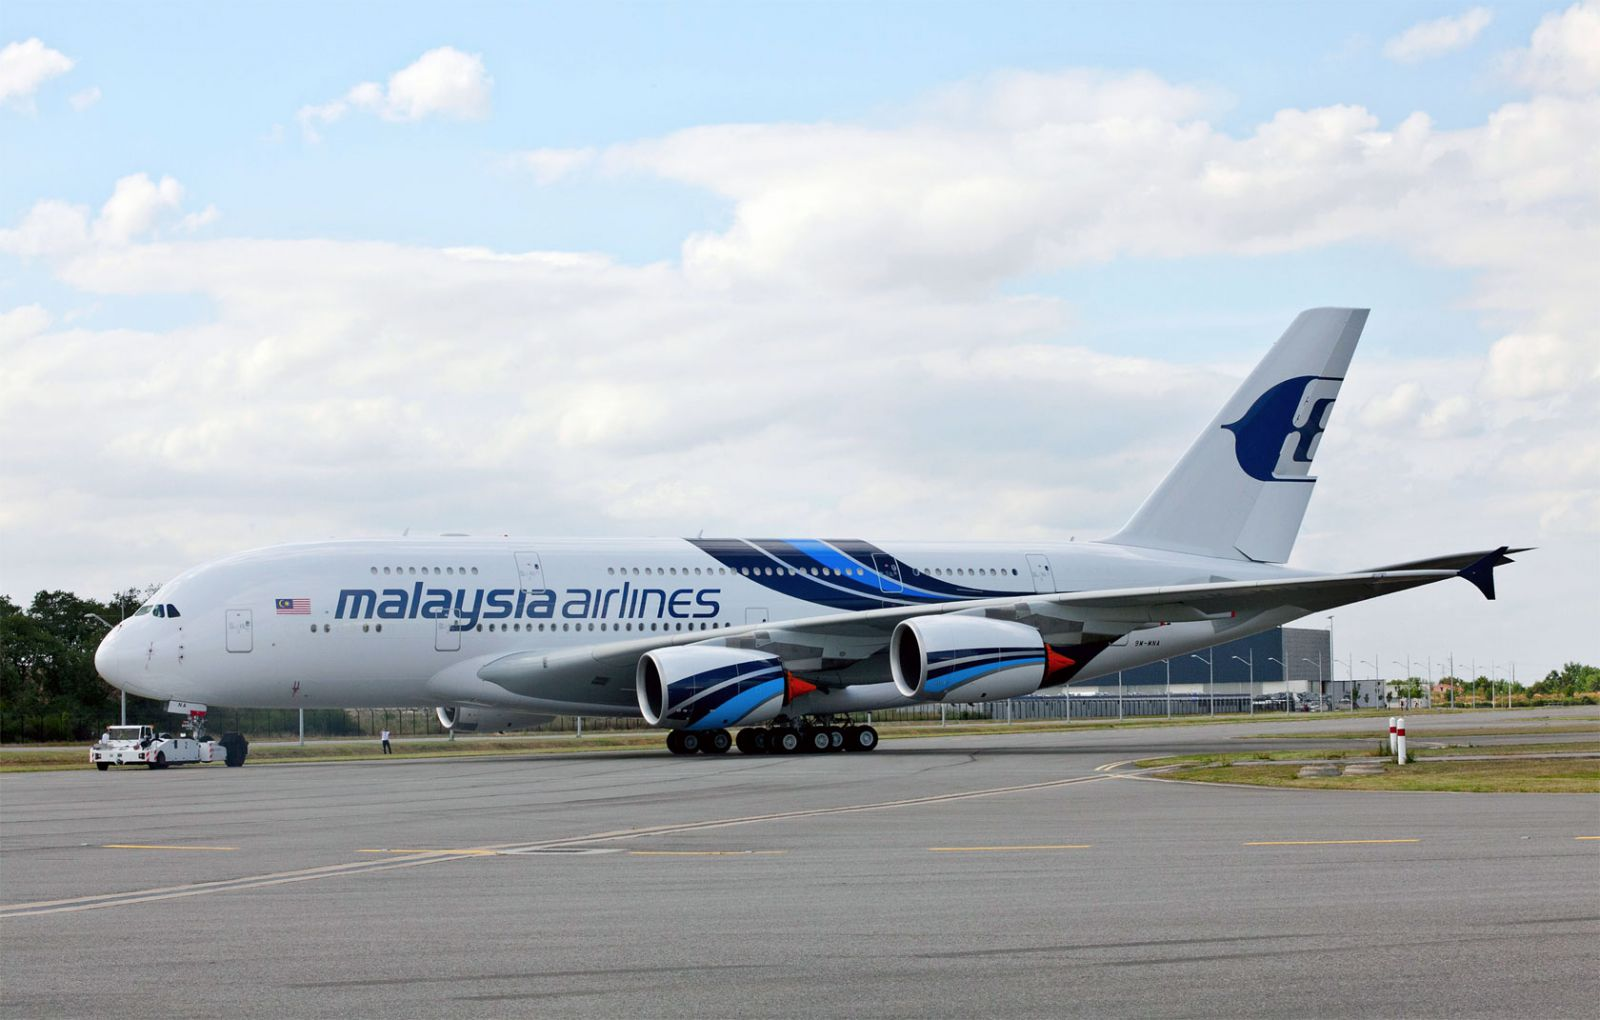 d5f5f39a374c Malaysia Airlines Airbus A380 on ramp.